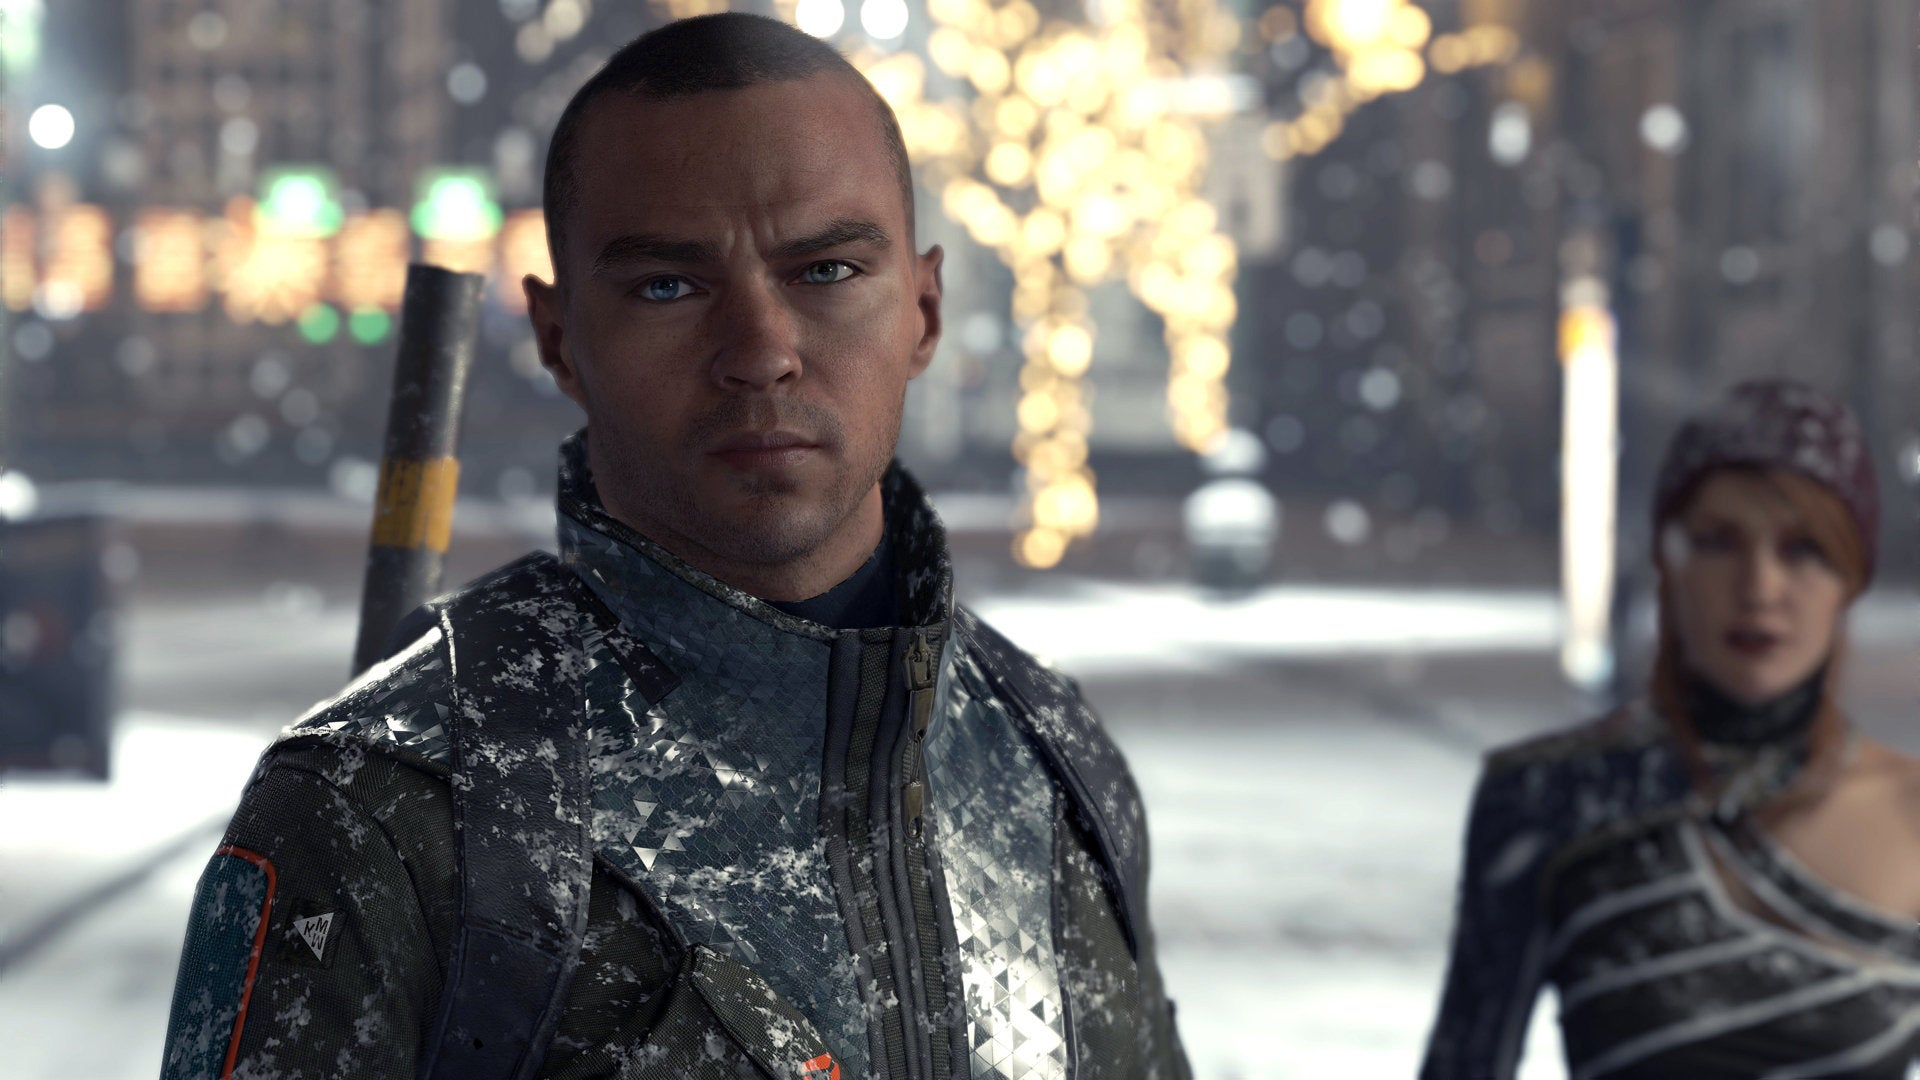 Detroit Developer Quantic Dream Sues French Media Over Articles On Toxic Work Conditions